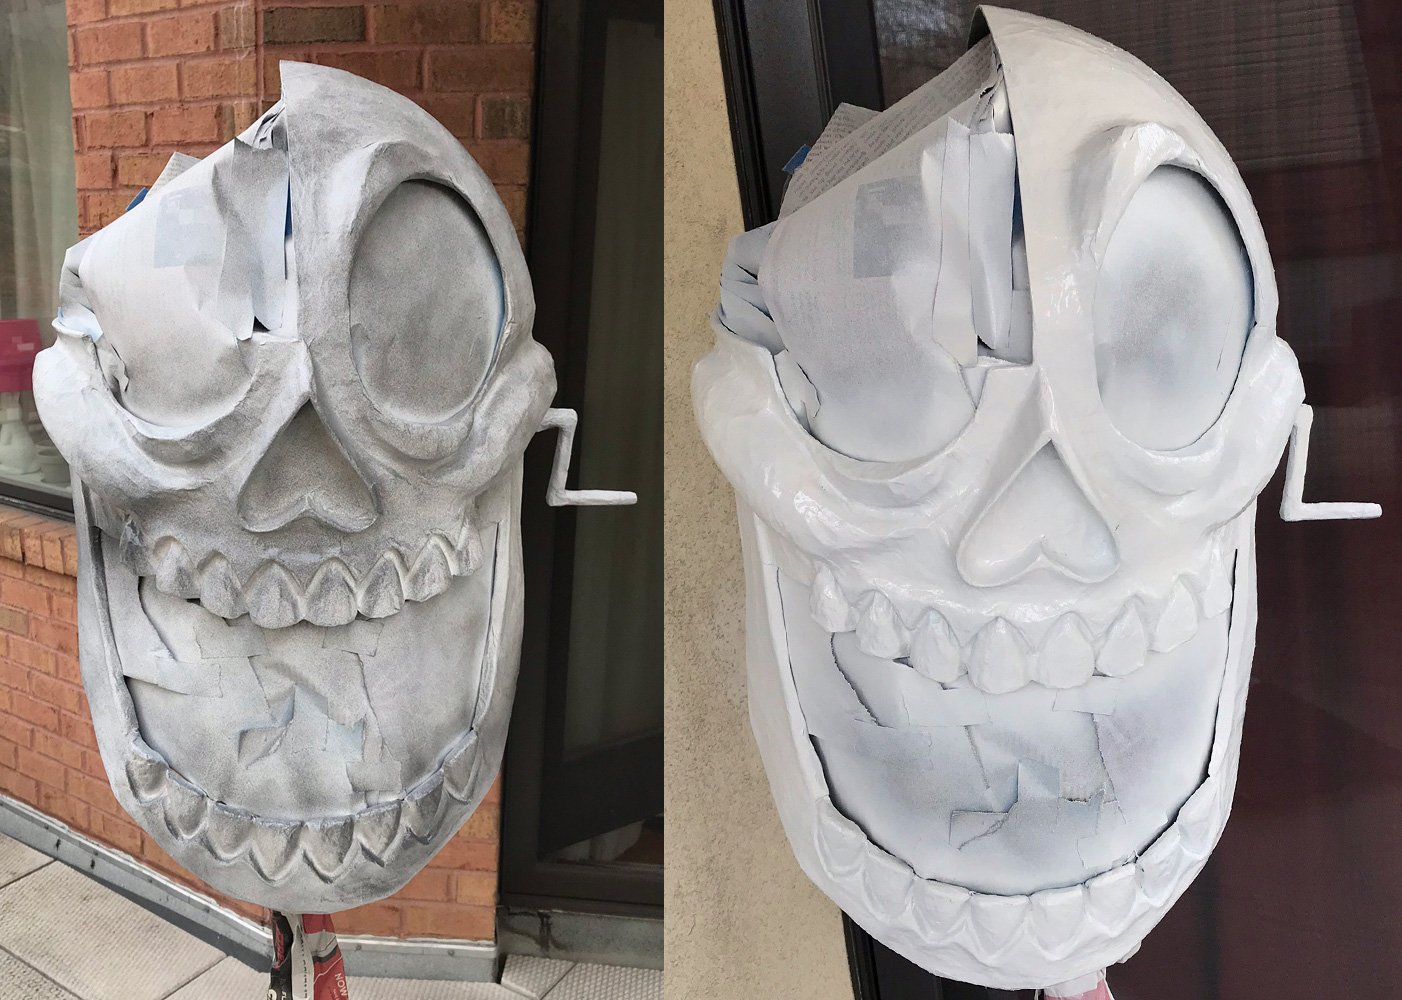 Clockwork skull mask - spray paint